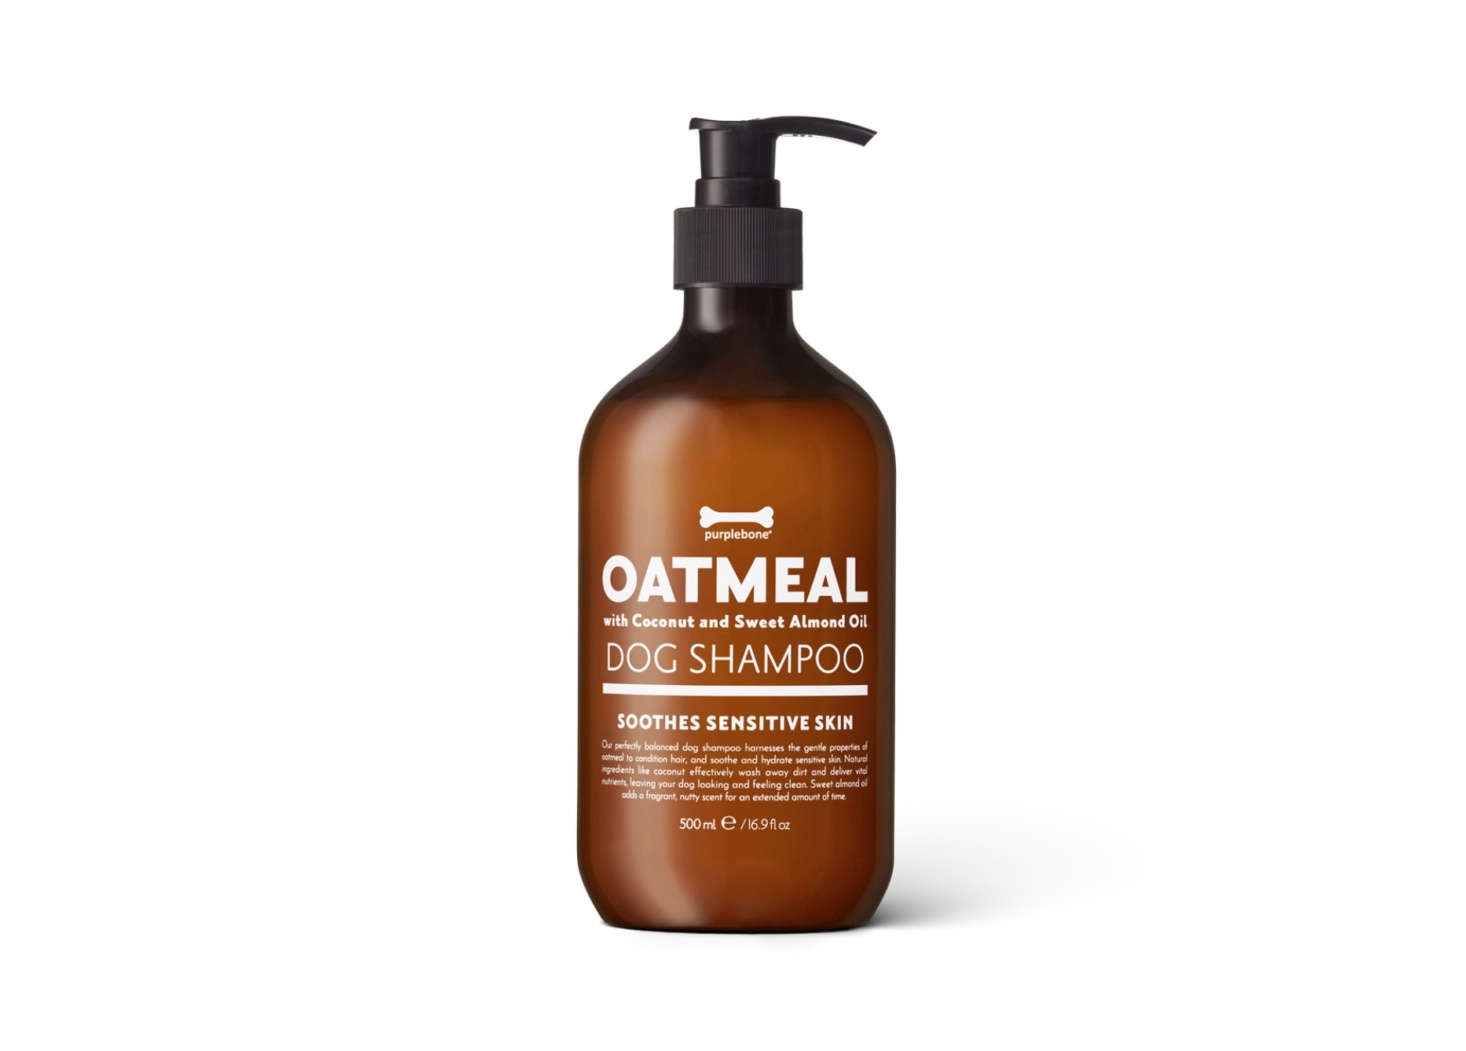 The go-to hair product at London dog salon Purplebone, Oatmeal Dog Shampoo is a blend of oatmeal and coconut that moisturizes skin and is gentle enough for weekly use; £.99.